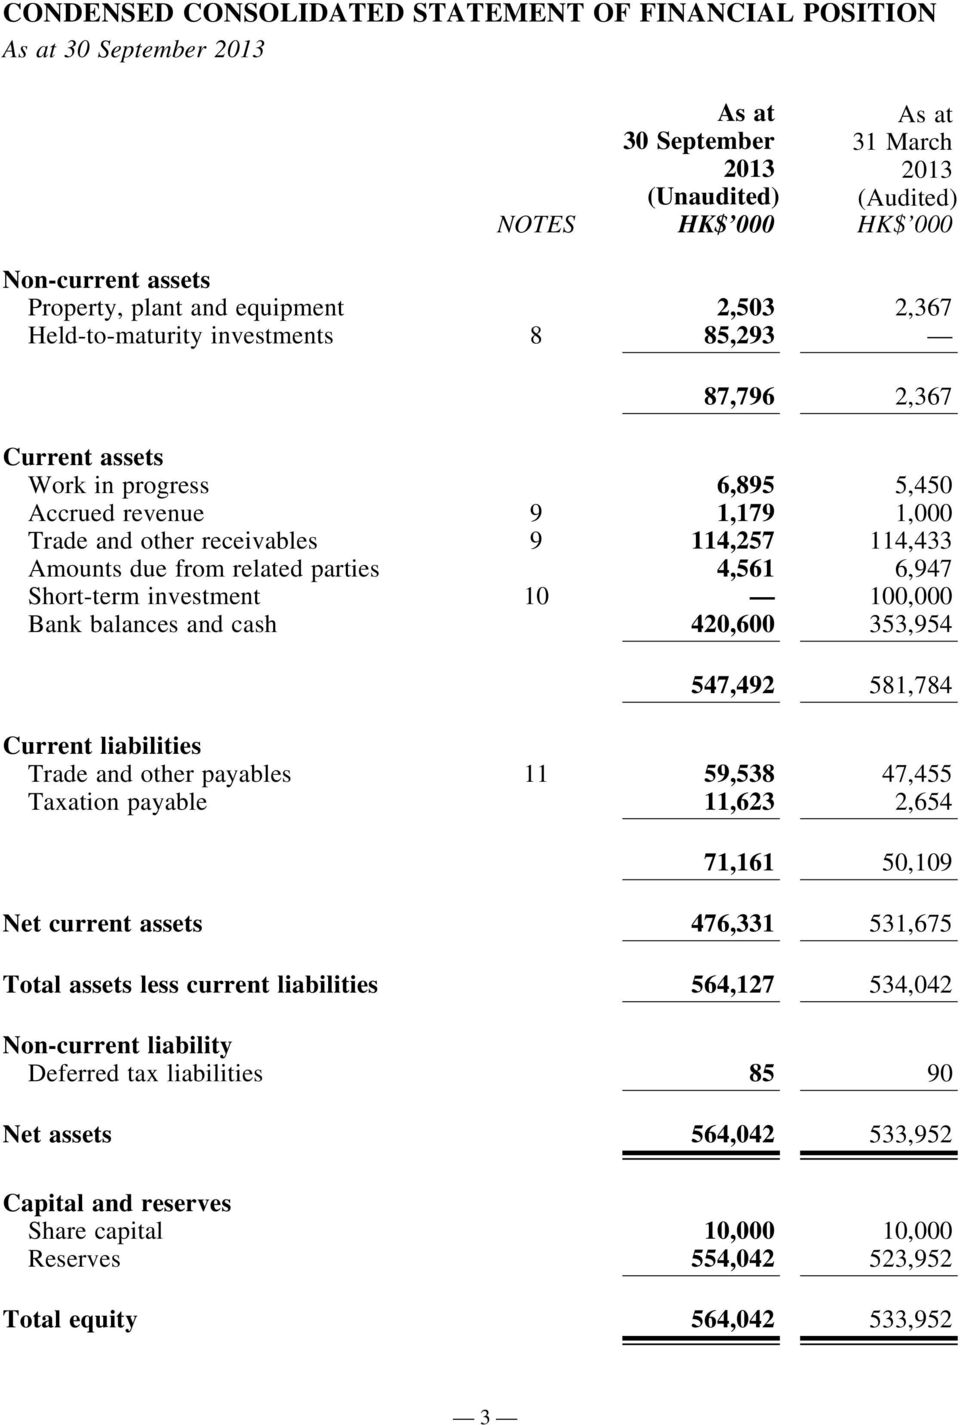 114,433 Amounts due from related parties 4,561 6,947 Short-term investment 10 100,000 Bank balances and cash 420,600 353,954 547,492 581,784 Current liabilities Trade and other payables 11 59,538